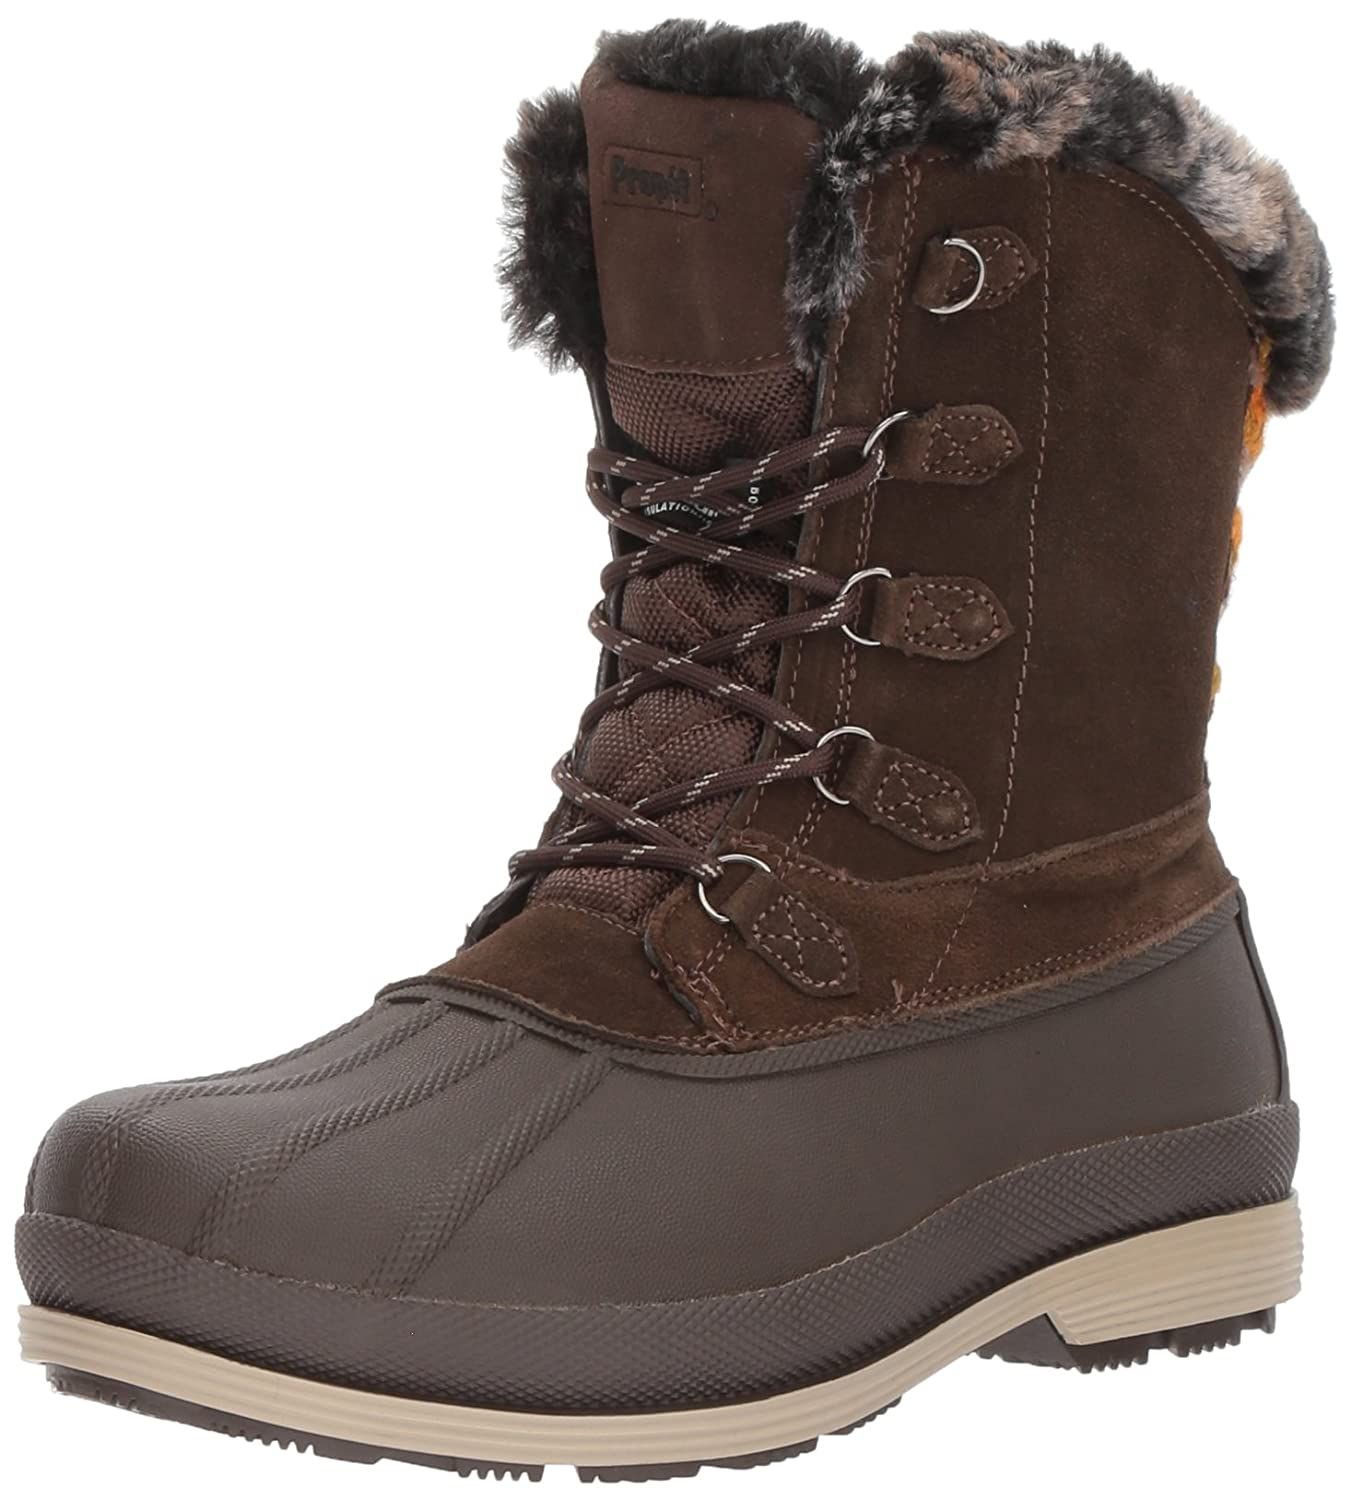 Propet Women's Lumi Tall Lace Snow Boot B01MXSR74D 9 2E US|Brown